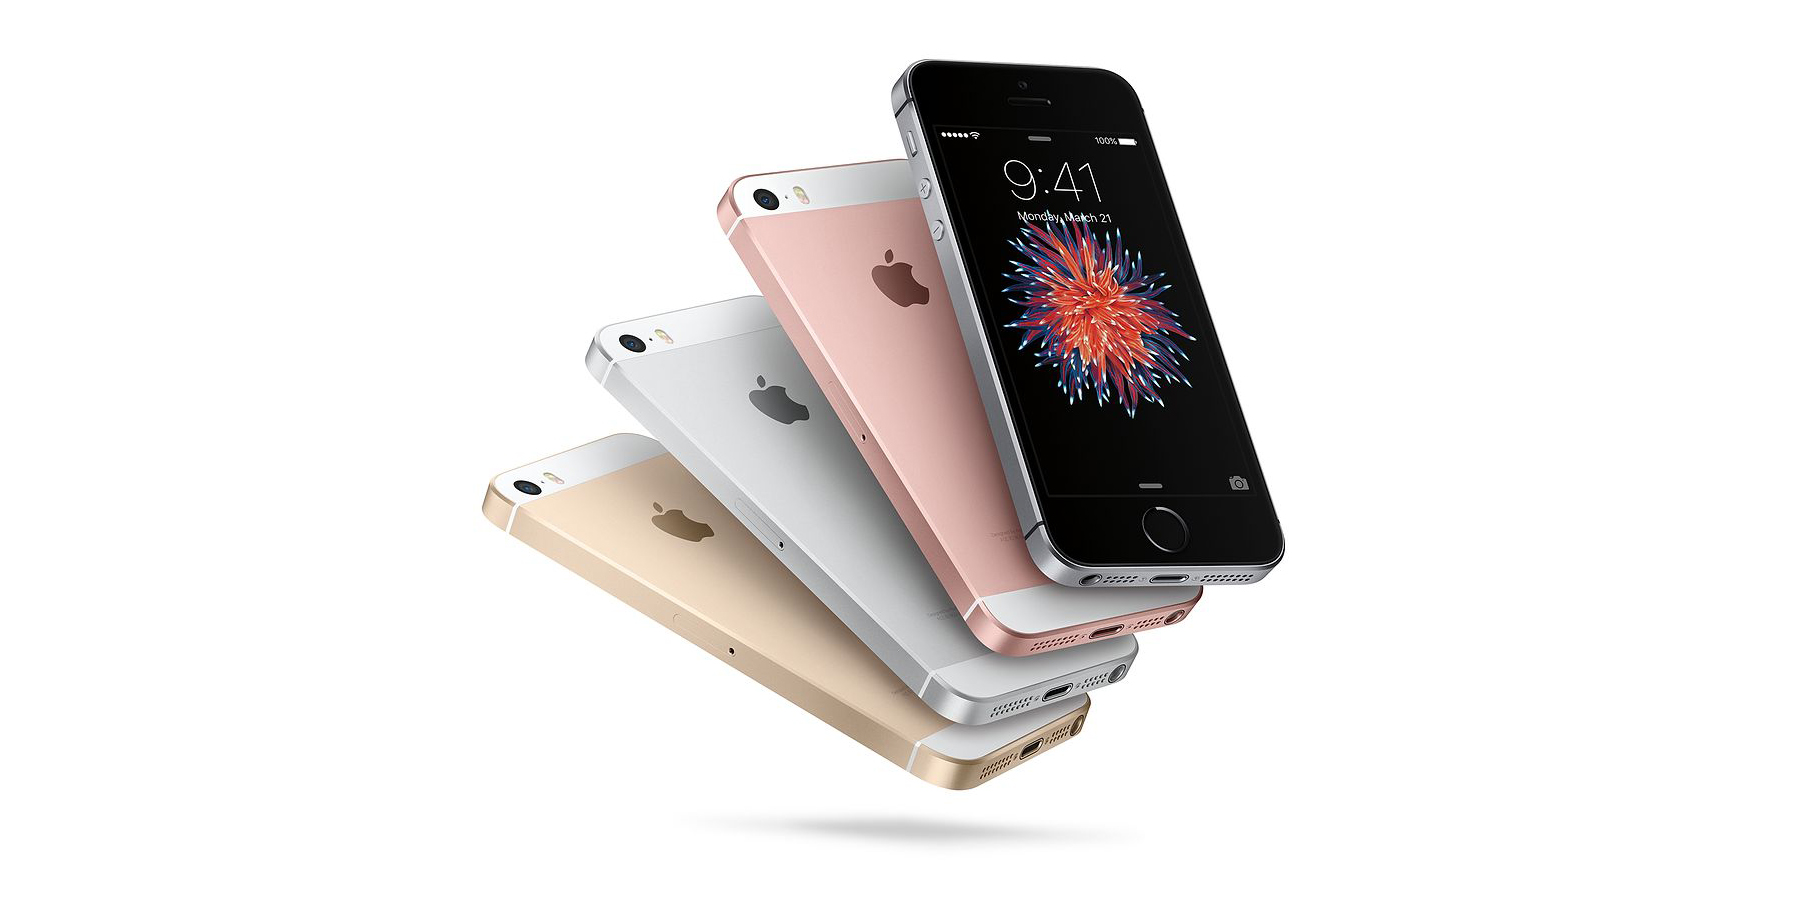 iPhone SE with 1-month of pre-paid service can be yours for just $87.50